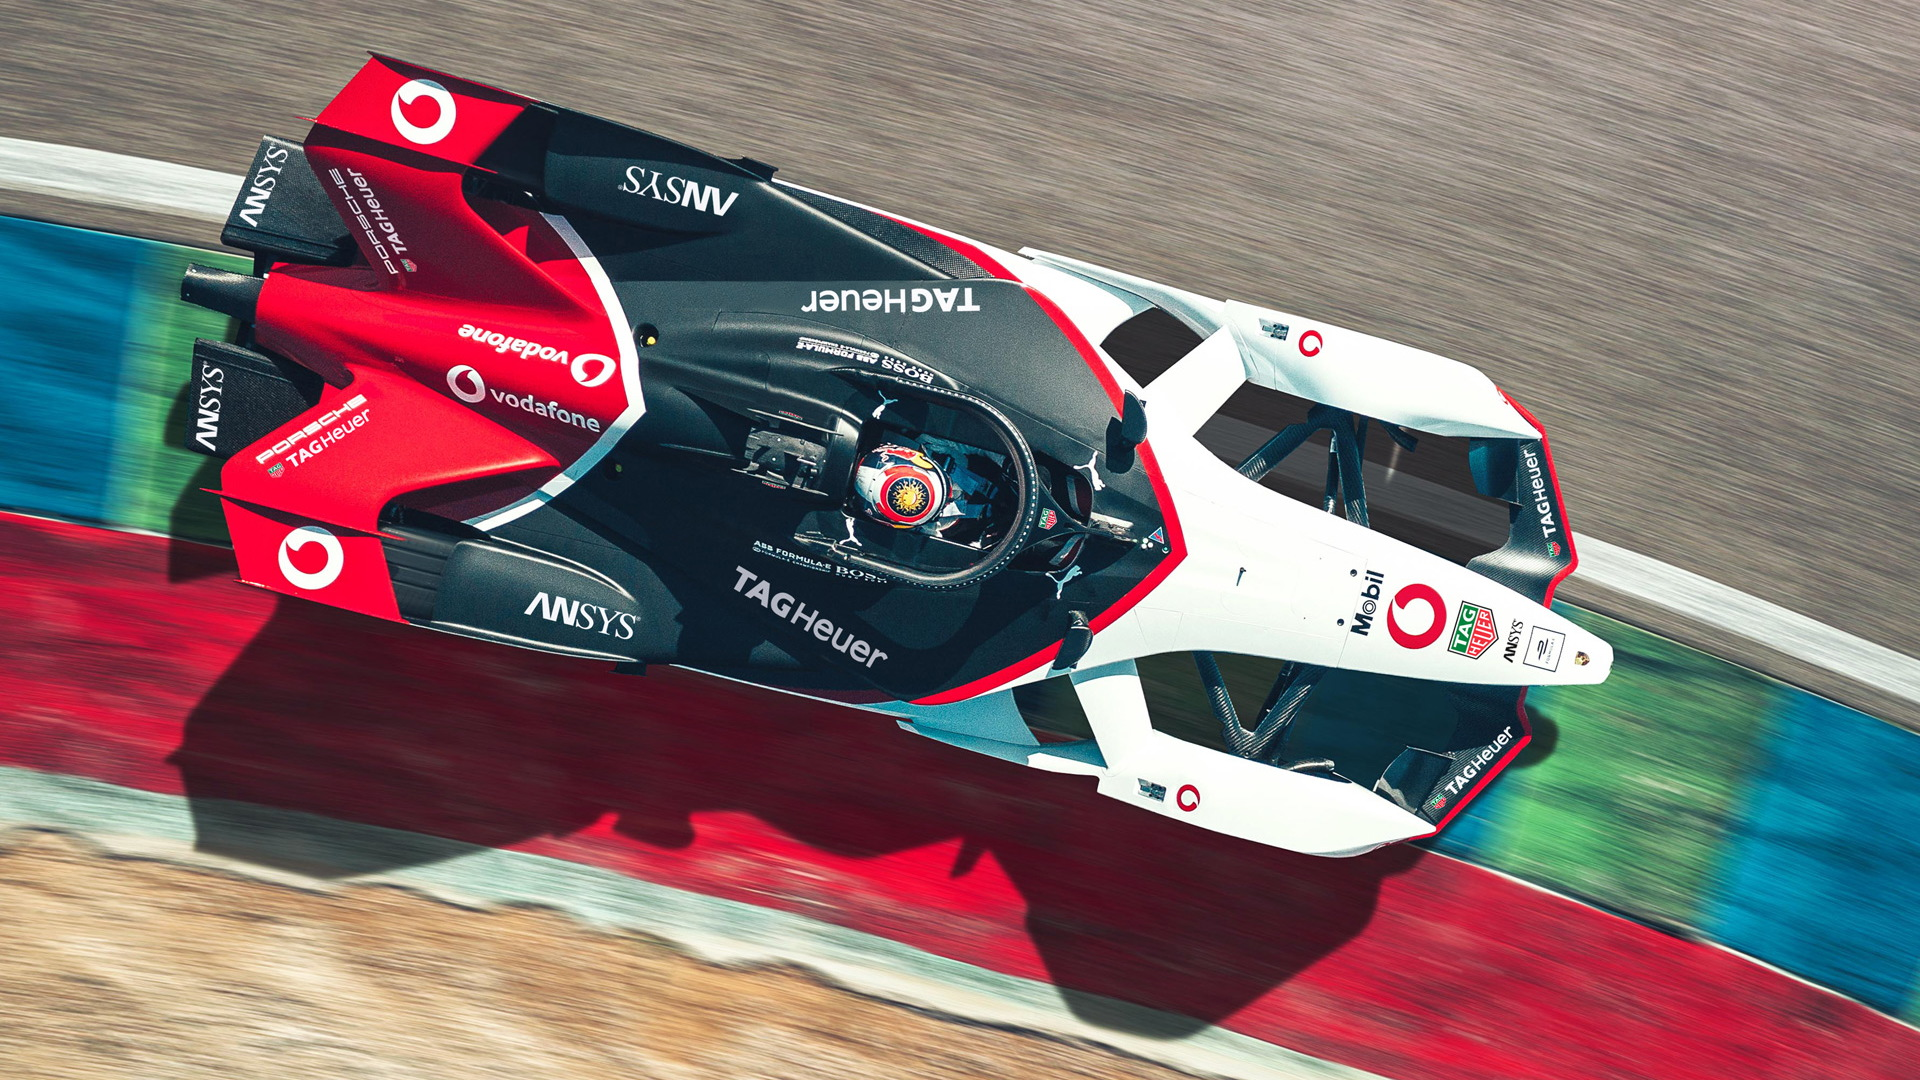 2019/2020 Porsche 99X Electric Formula E race car